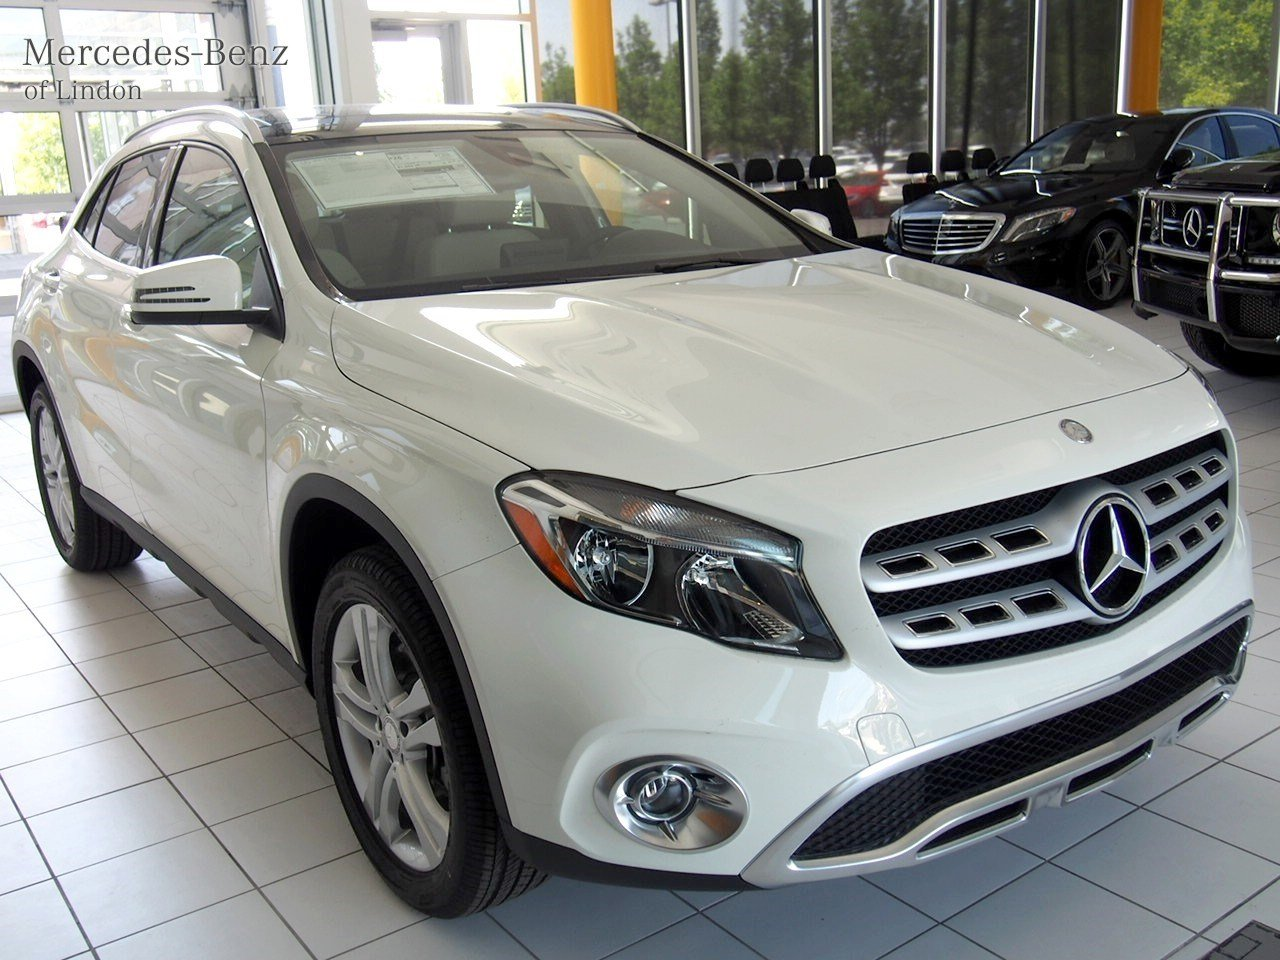 new 2018 mercedes benz gla gla 250 4matic suv in lindon jj371277 mercedes benz of lindon. Black Bedroom Furniture Sets. Home Design Ideas